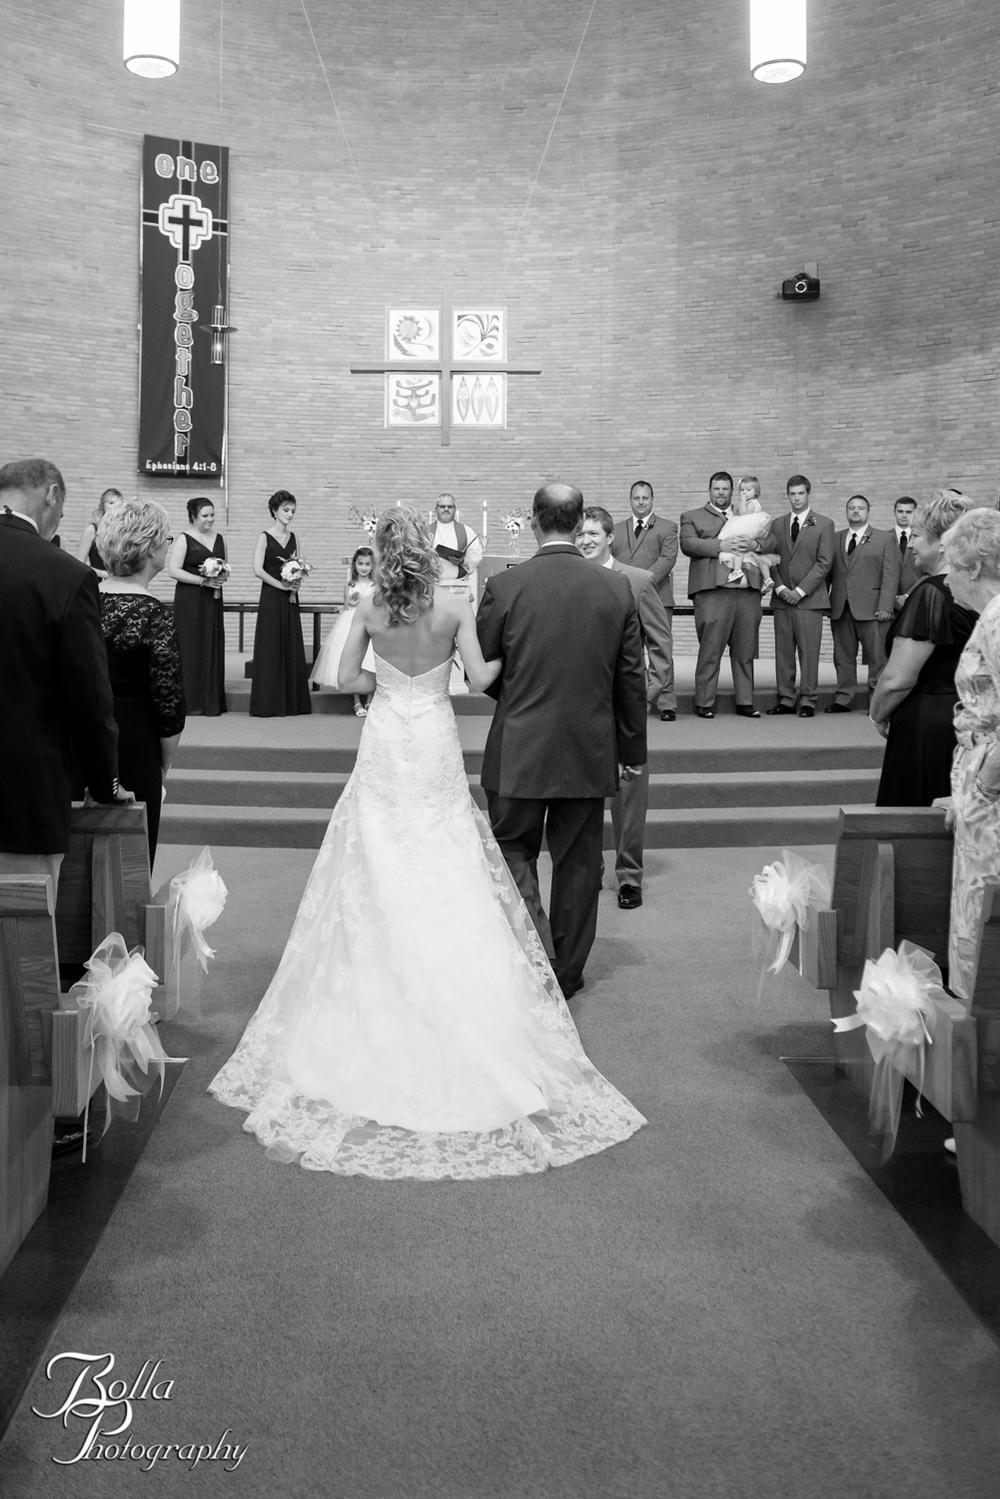 Bolla_Photography_St_Louis_wedding_photographer-0172.jpg